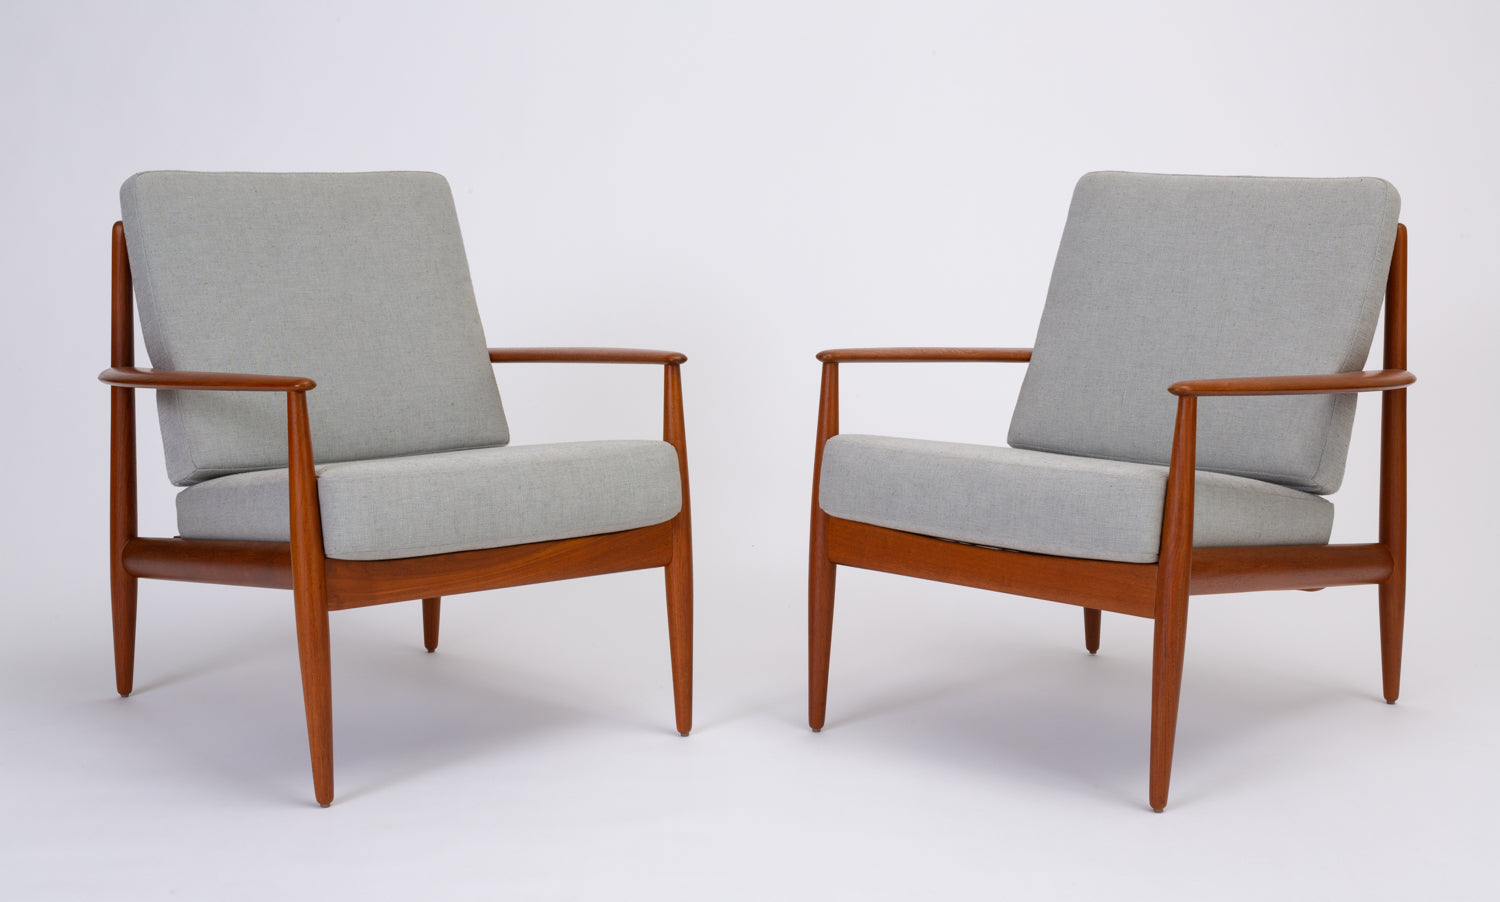 Charmant Pair Of Teak Lounge Chairs By Grete Jalk For France U0026 Son